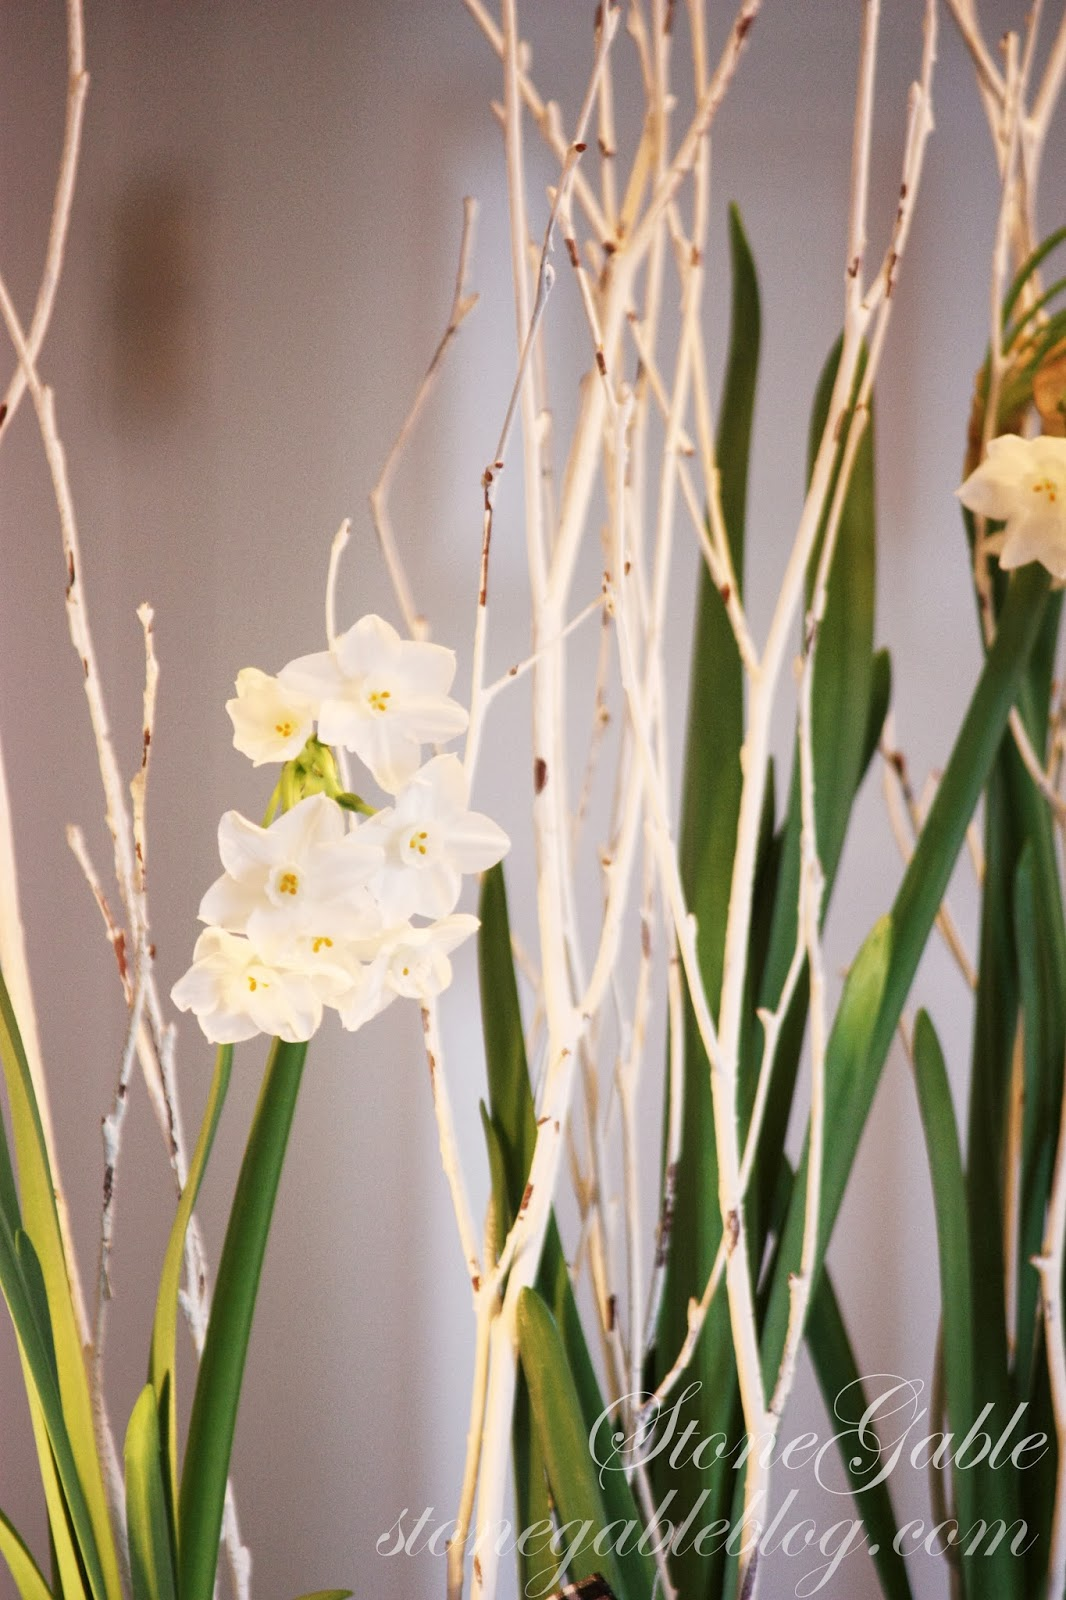 Its time to plant paperwhites stonegable paperwhites make the most delightful gifts for hostesses teachers hairdressers etc mightylinksfo